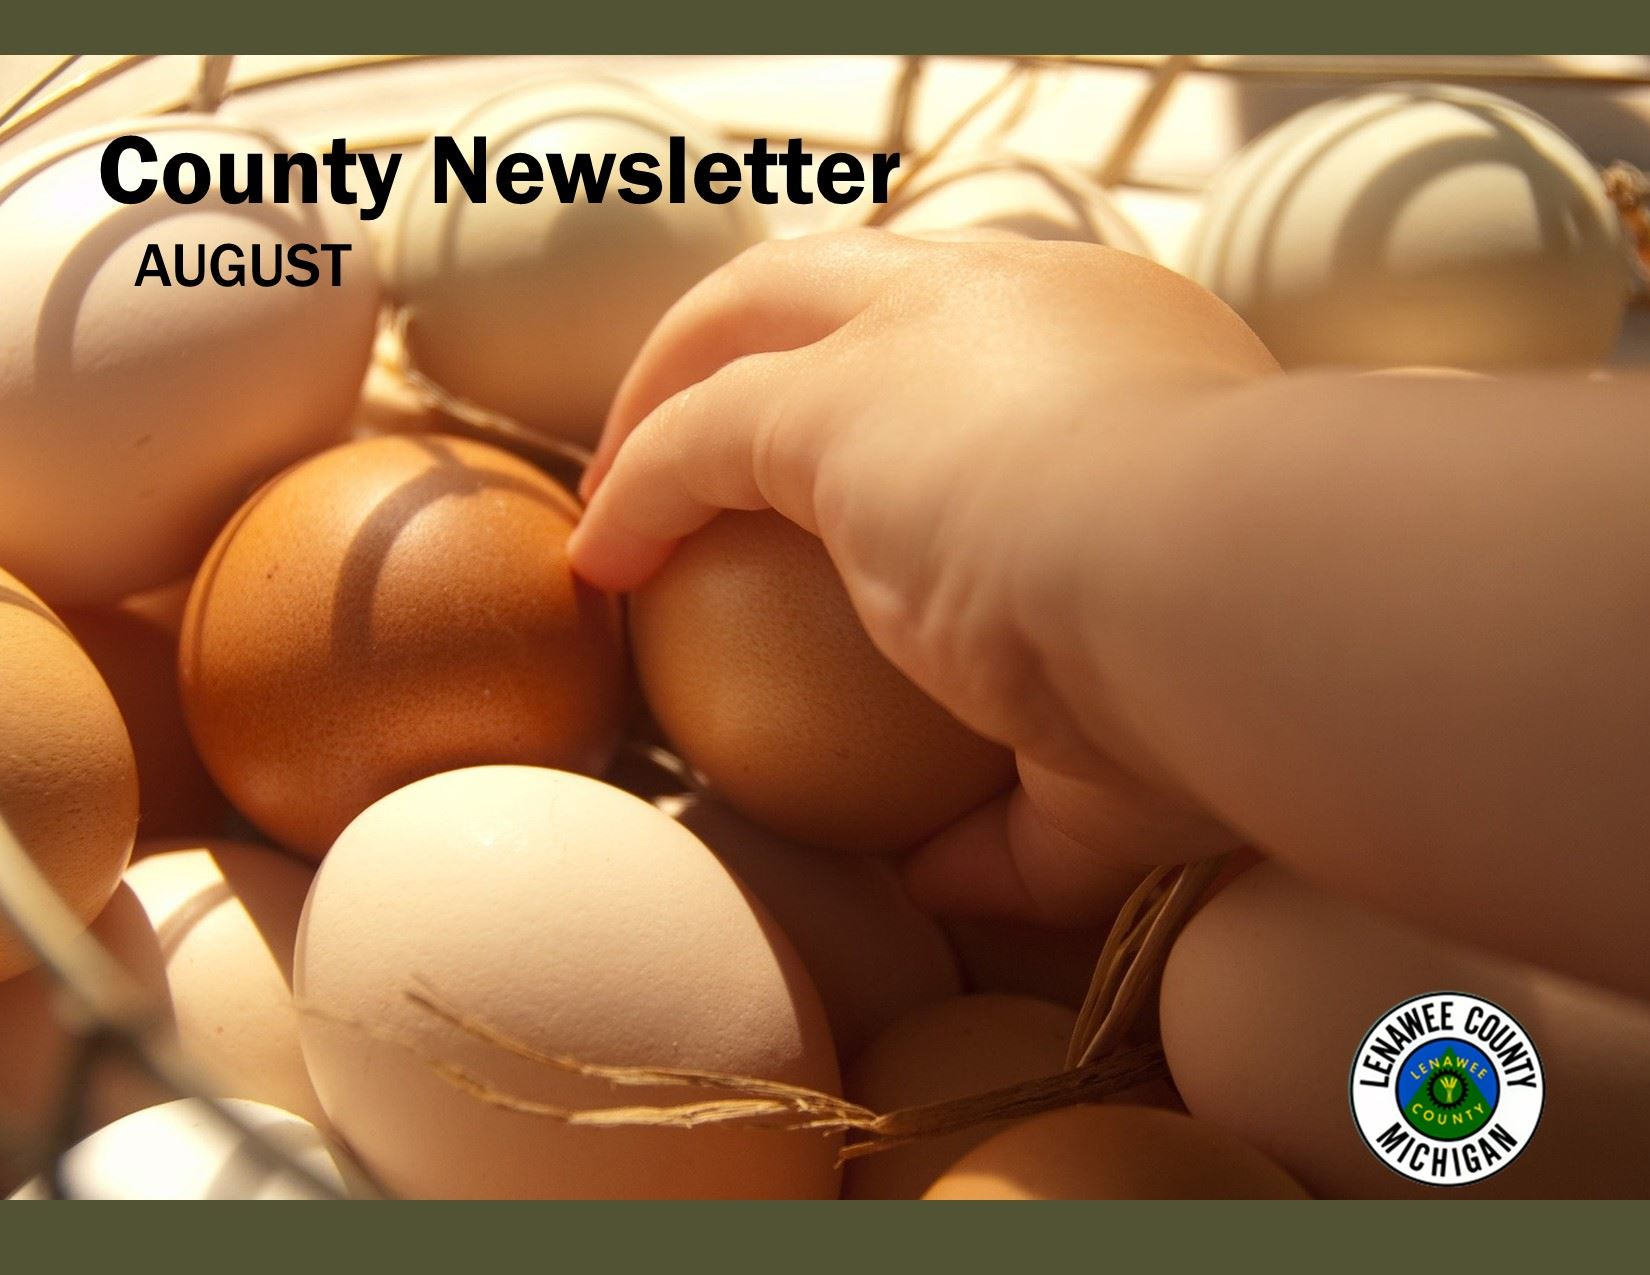 NEWSLETTER COVER AUG